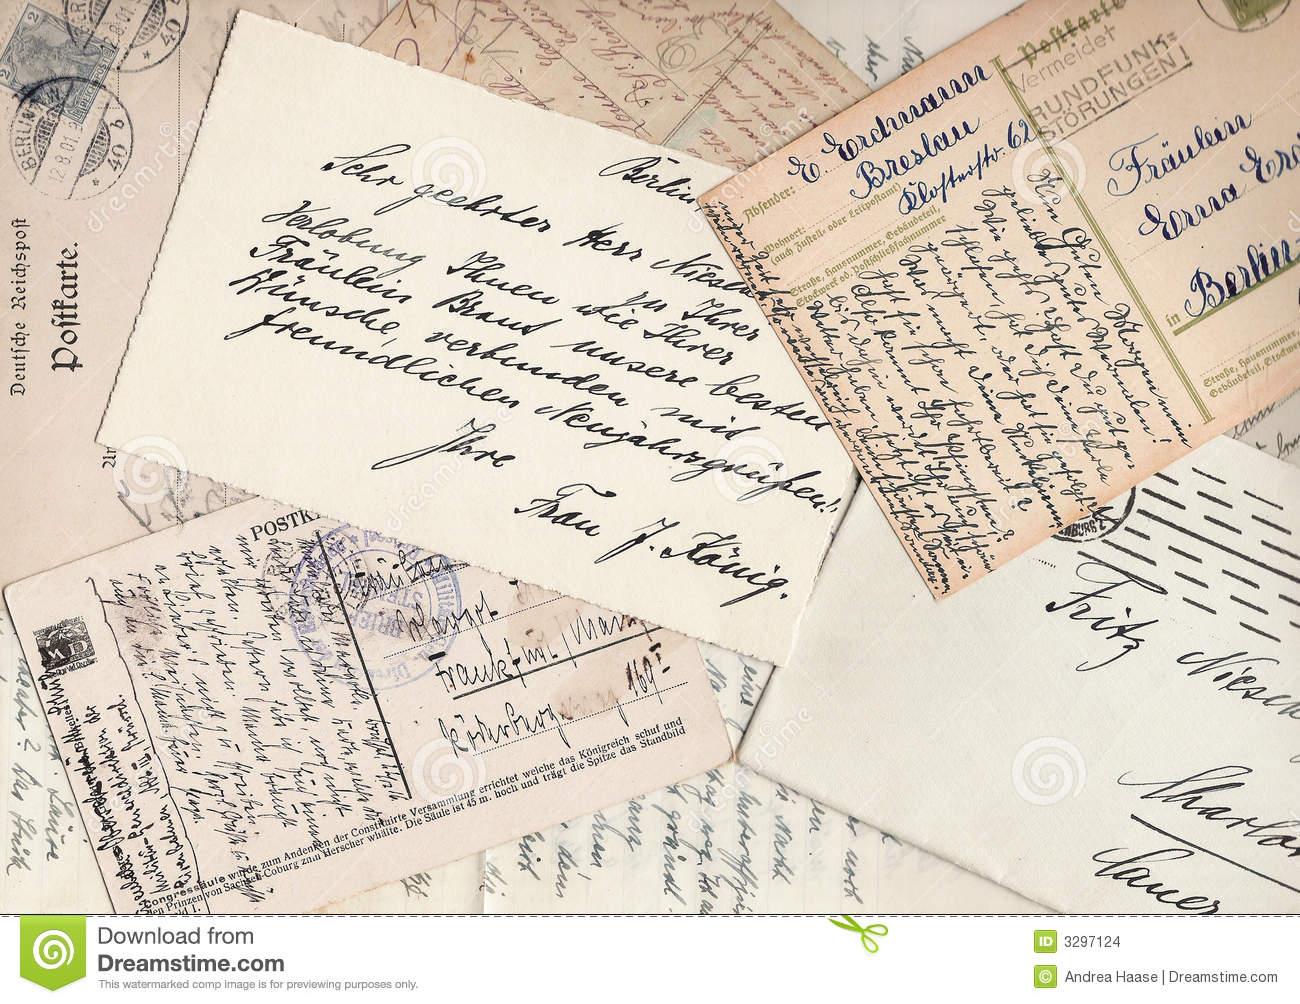 Collage of old letters